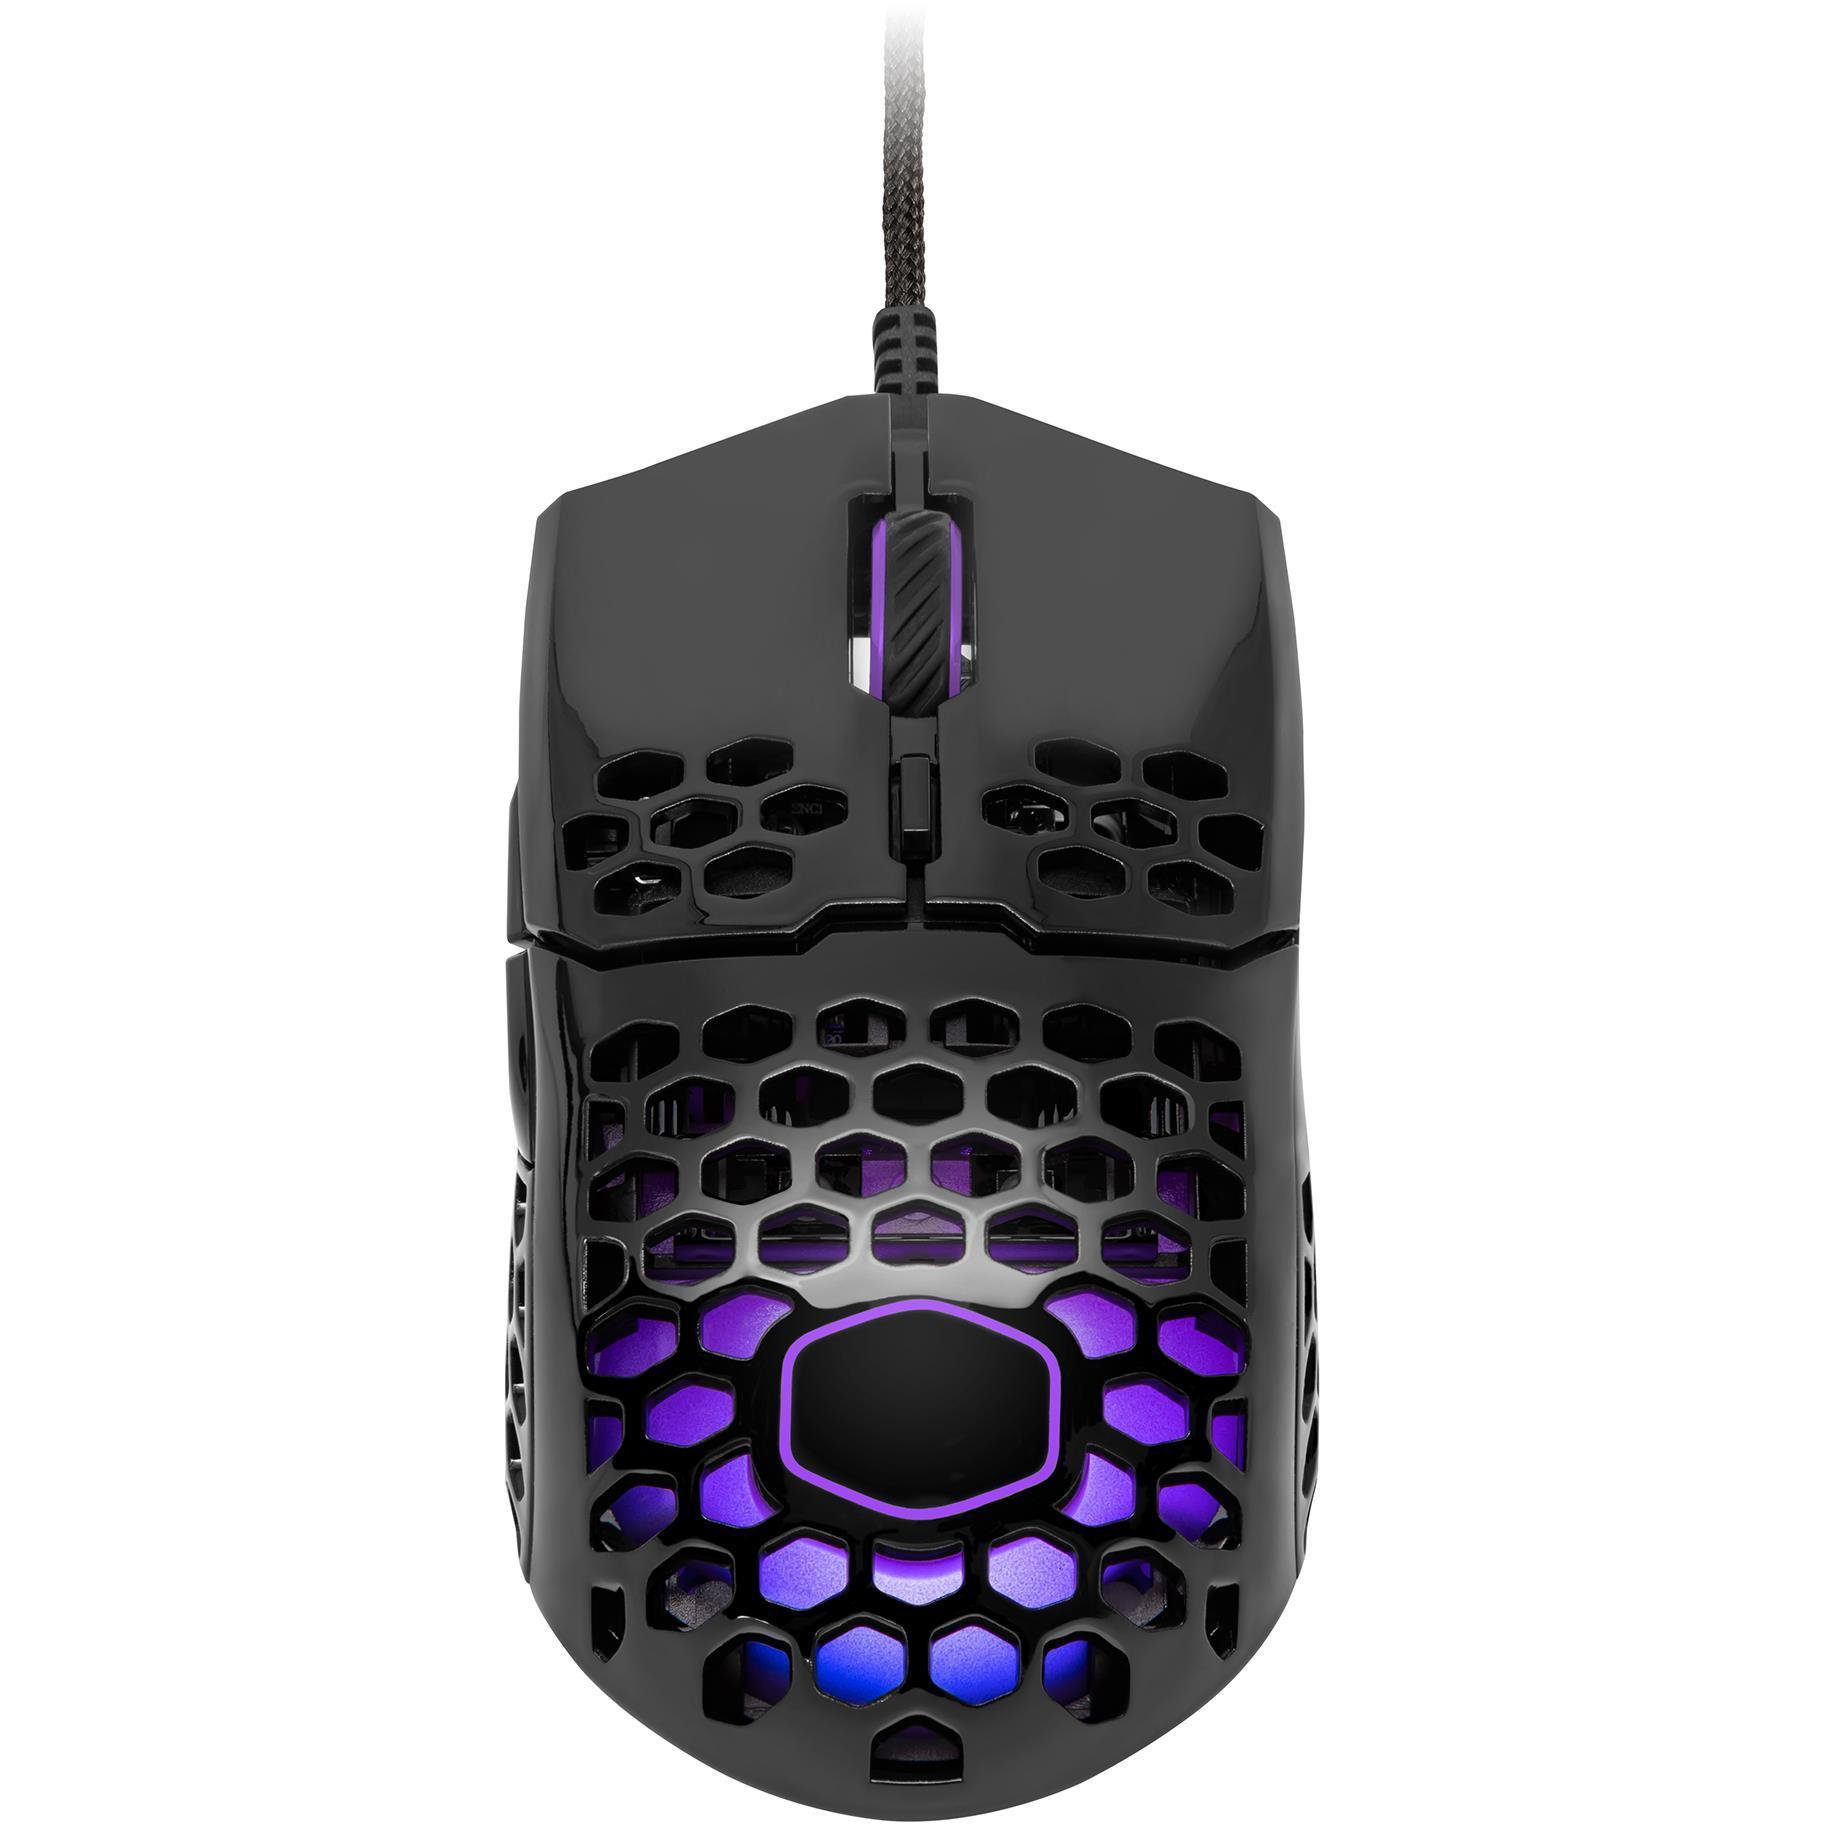 CoolerMaster MM711 RGB Ultra-Light Pro Gaming Mouse (Glossy Black)